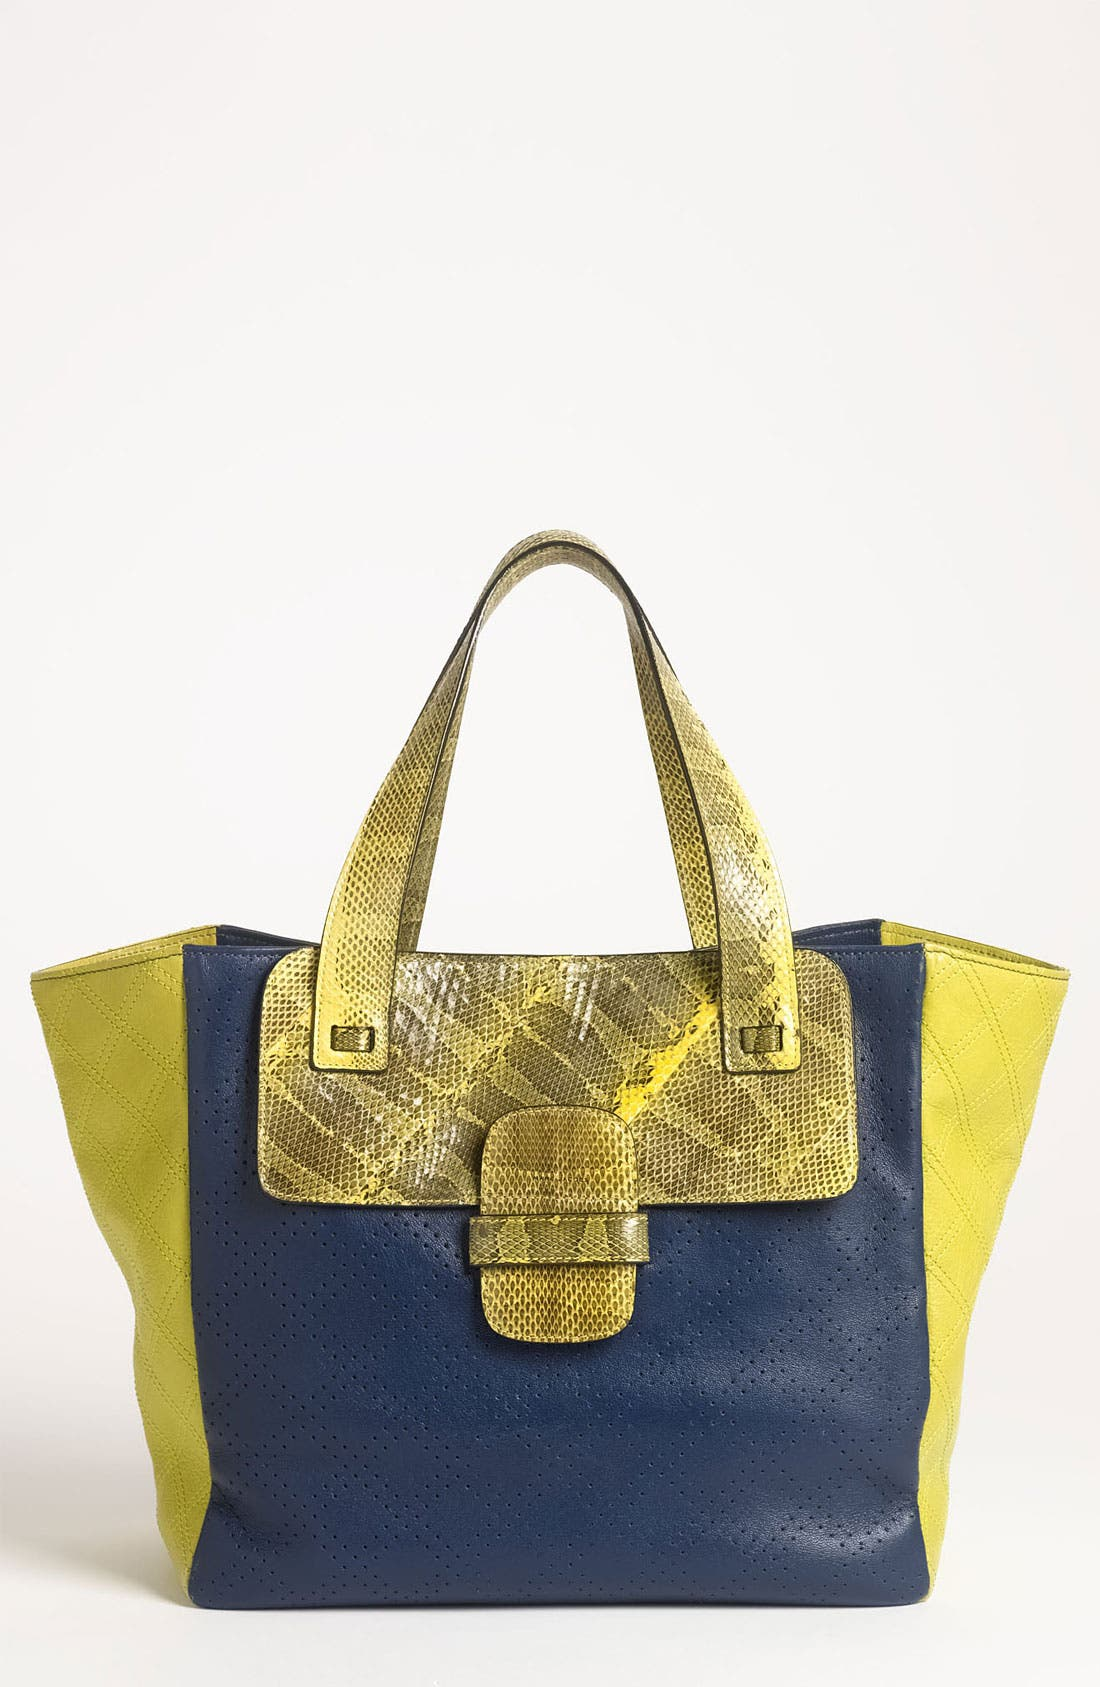 Main Image - MARC JACOBS 'Small Khaki' Perforated Tote with Genuine Snakeskin Trim